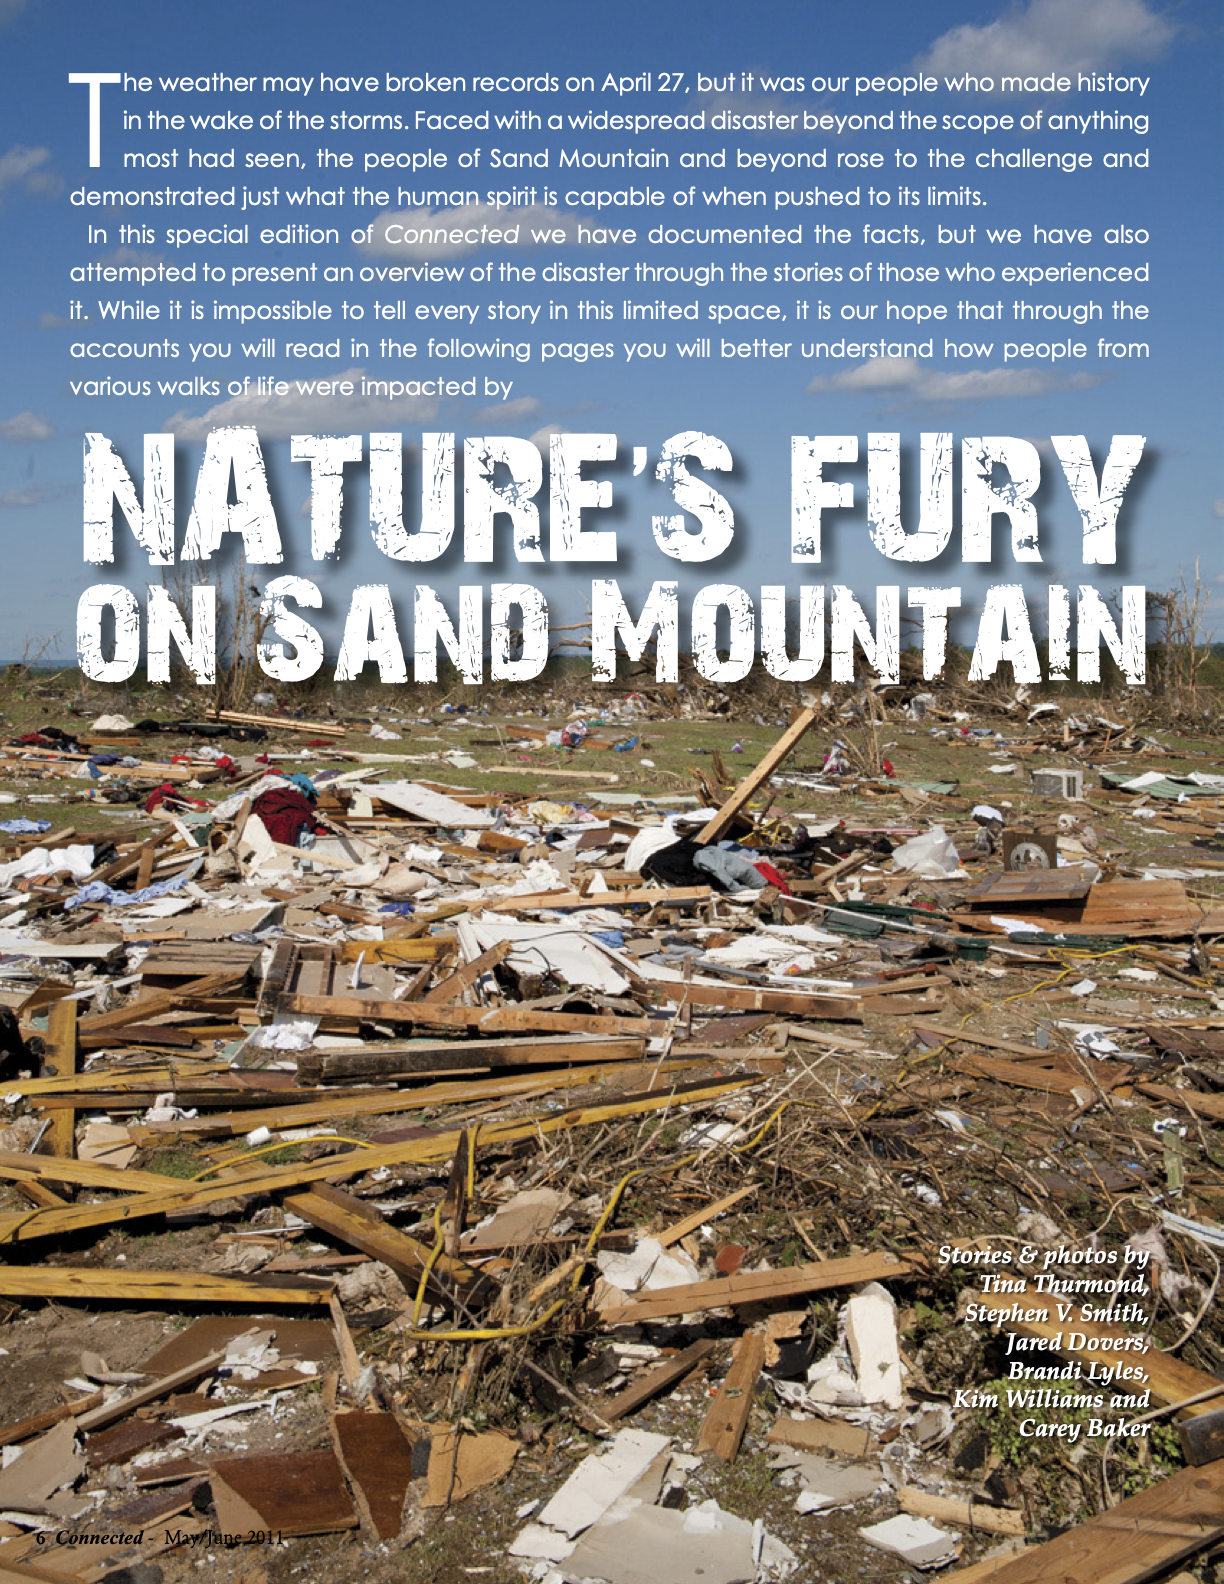 Page 6 from FTC Connected Magazine for May/June 2011. The weather may have broken records on april 27, but it was our people who made history in the wake of the storms. Faced with a widespread disaster beyond the scope of anything most had seen, the people of sand Mountain and beyond rose to the challenge and demonstrated just what the human spirit is capable of when pushed to its limits. In this special edition of Connected we have documented the facts, but we have also attempted to present an overview of the disaster through the stories of those who experienced it. While it is impossible to tell every story in this limited space, it is our hope that through the accounts you will read in the following pages you will better understand how people from various walks of life were impacted by nature's fury on Sand Mountain. Stories & photos by Tina Thurmond, Stephen V. Smith, Jared Dovers, Brandi Lyles, Kim Williams and Carey Baker.